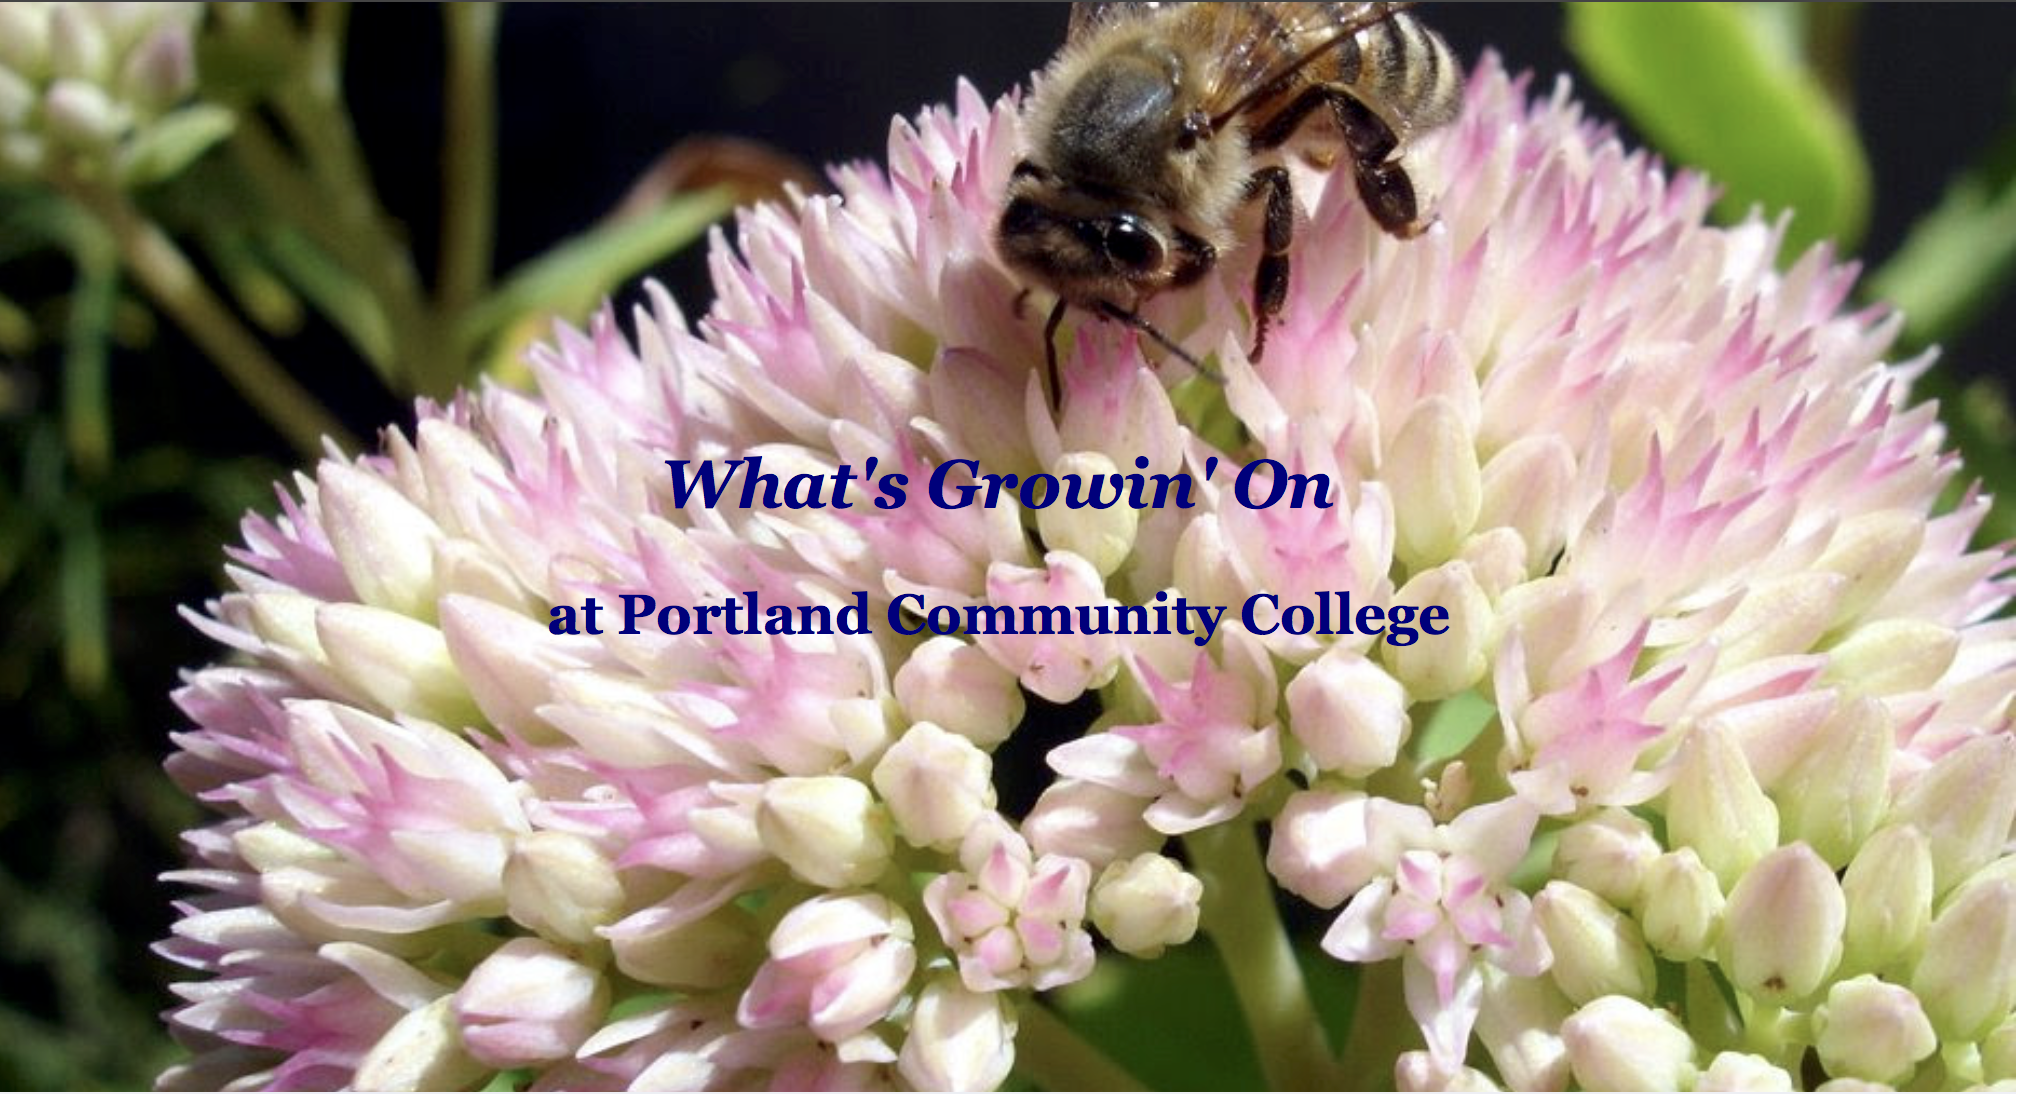 What's Growin' On at Portland Community College